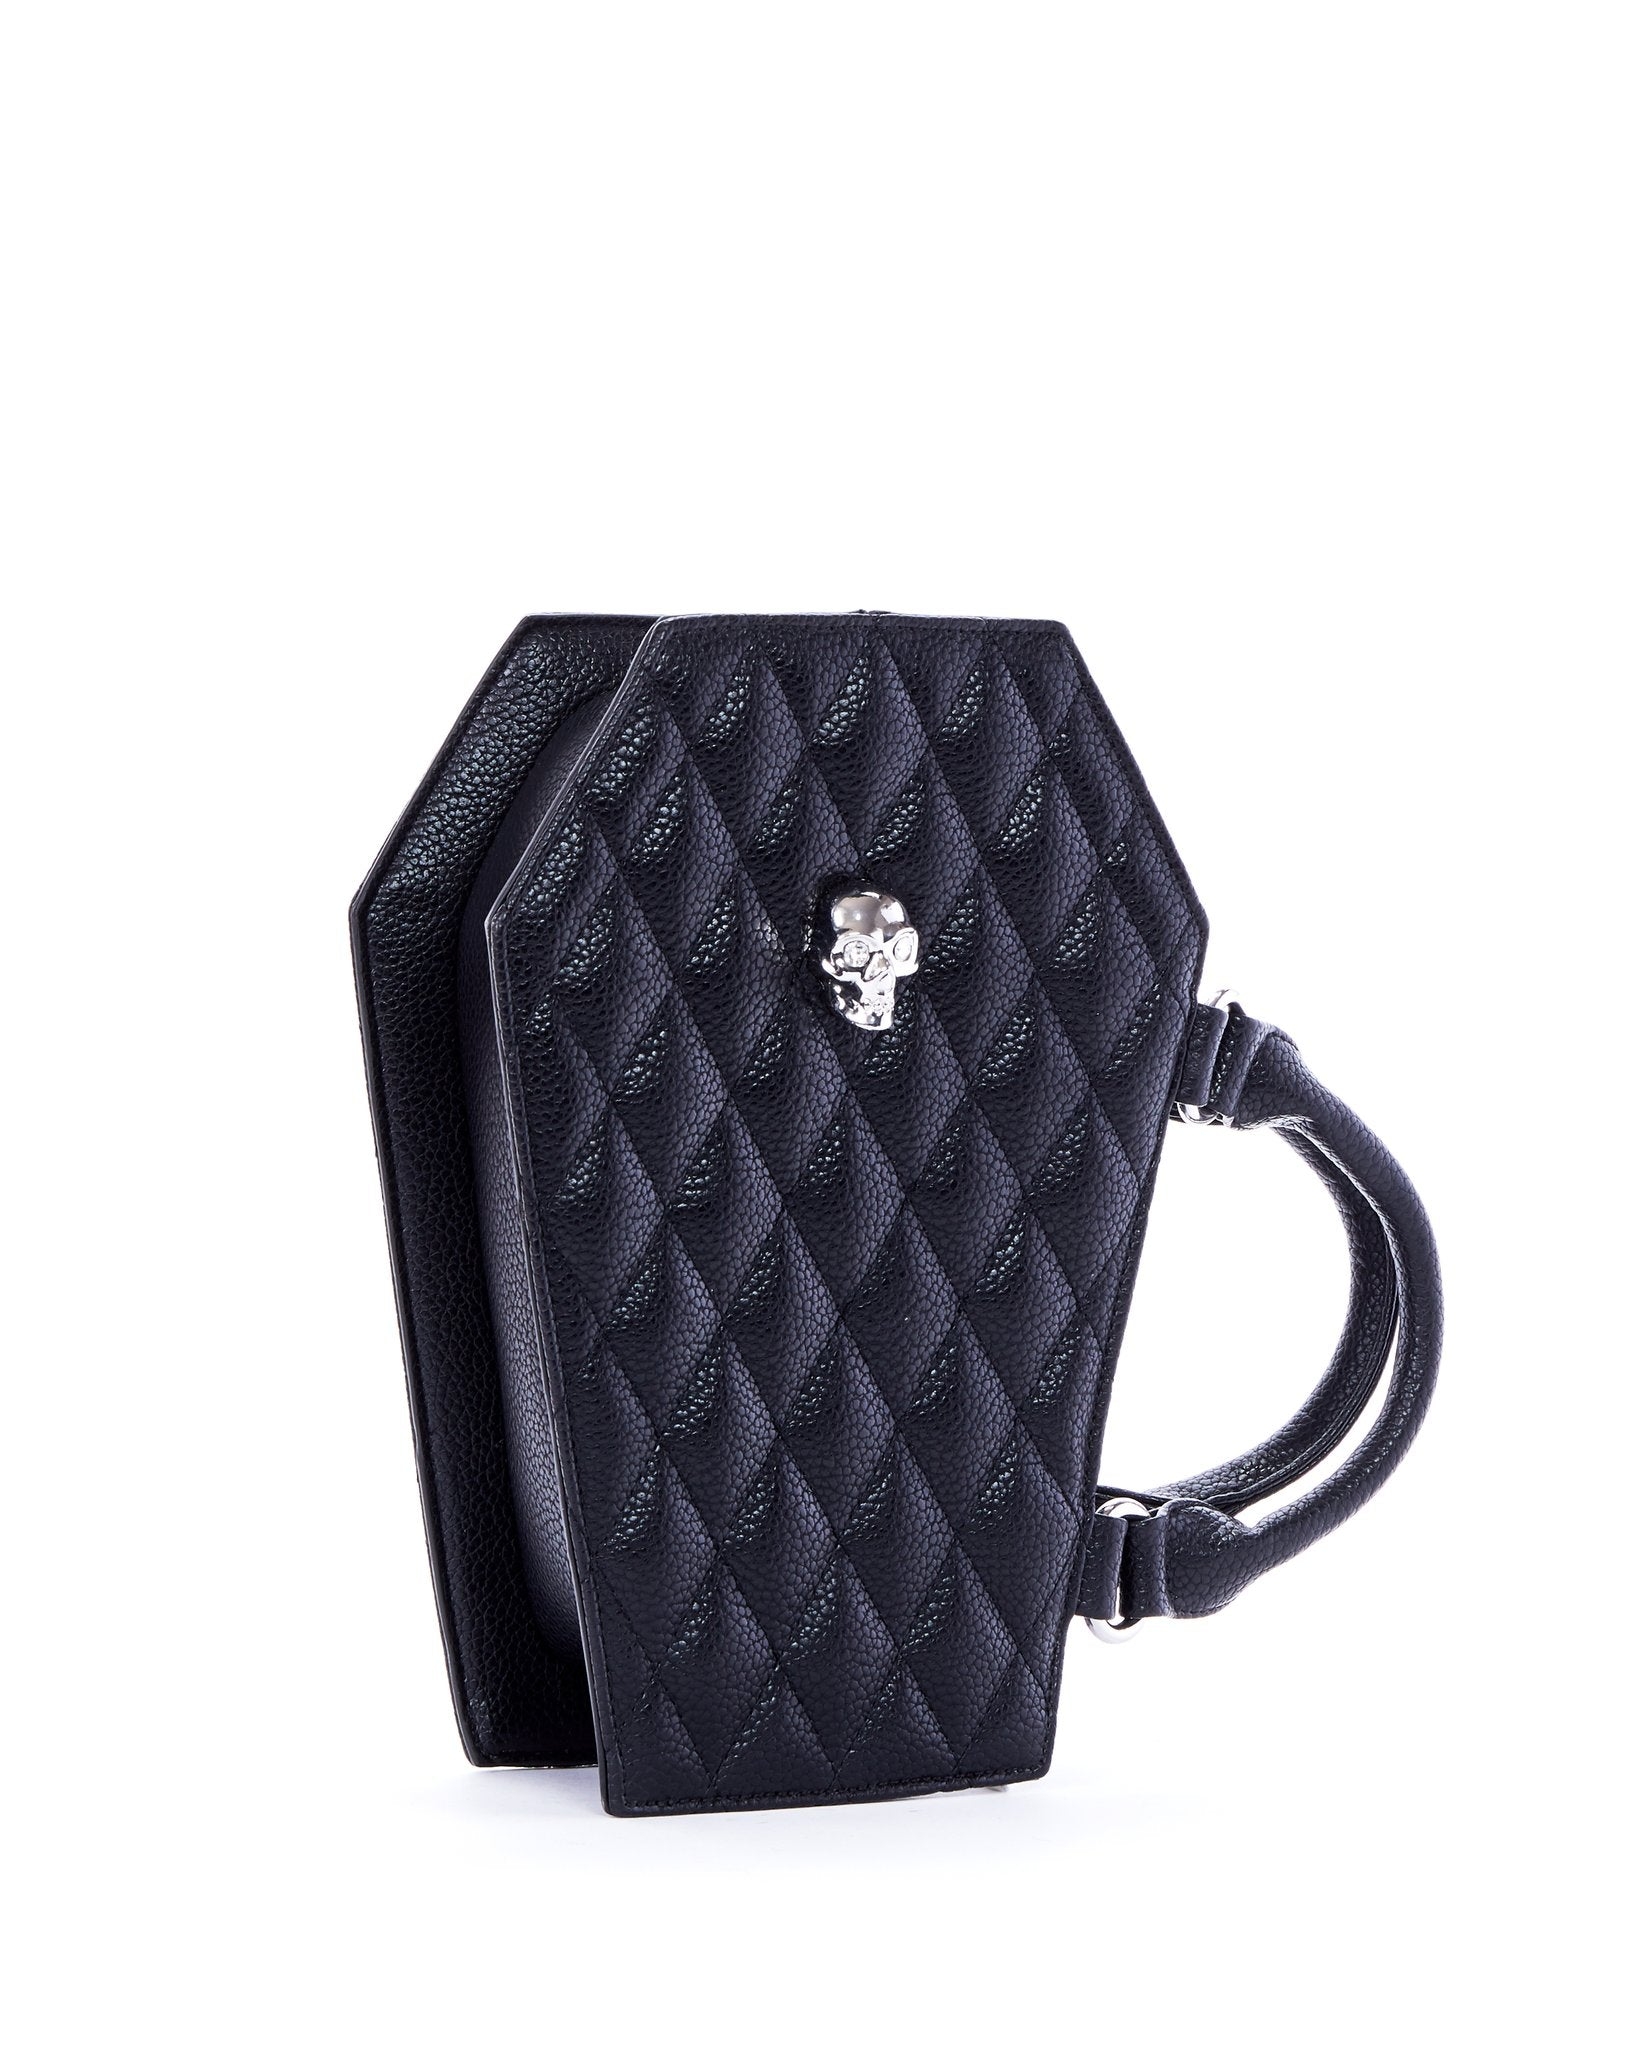 The Elvira Lux Coffin Mini Tote - MATTE BLACK